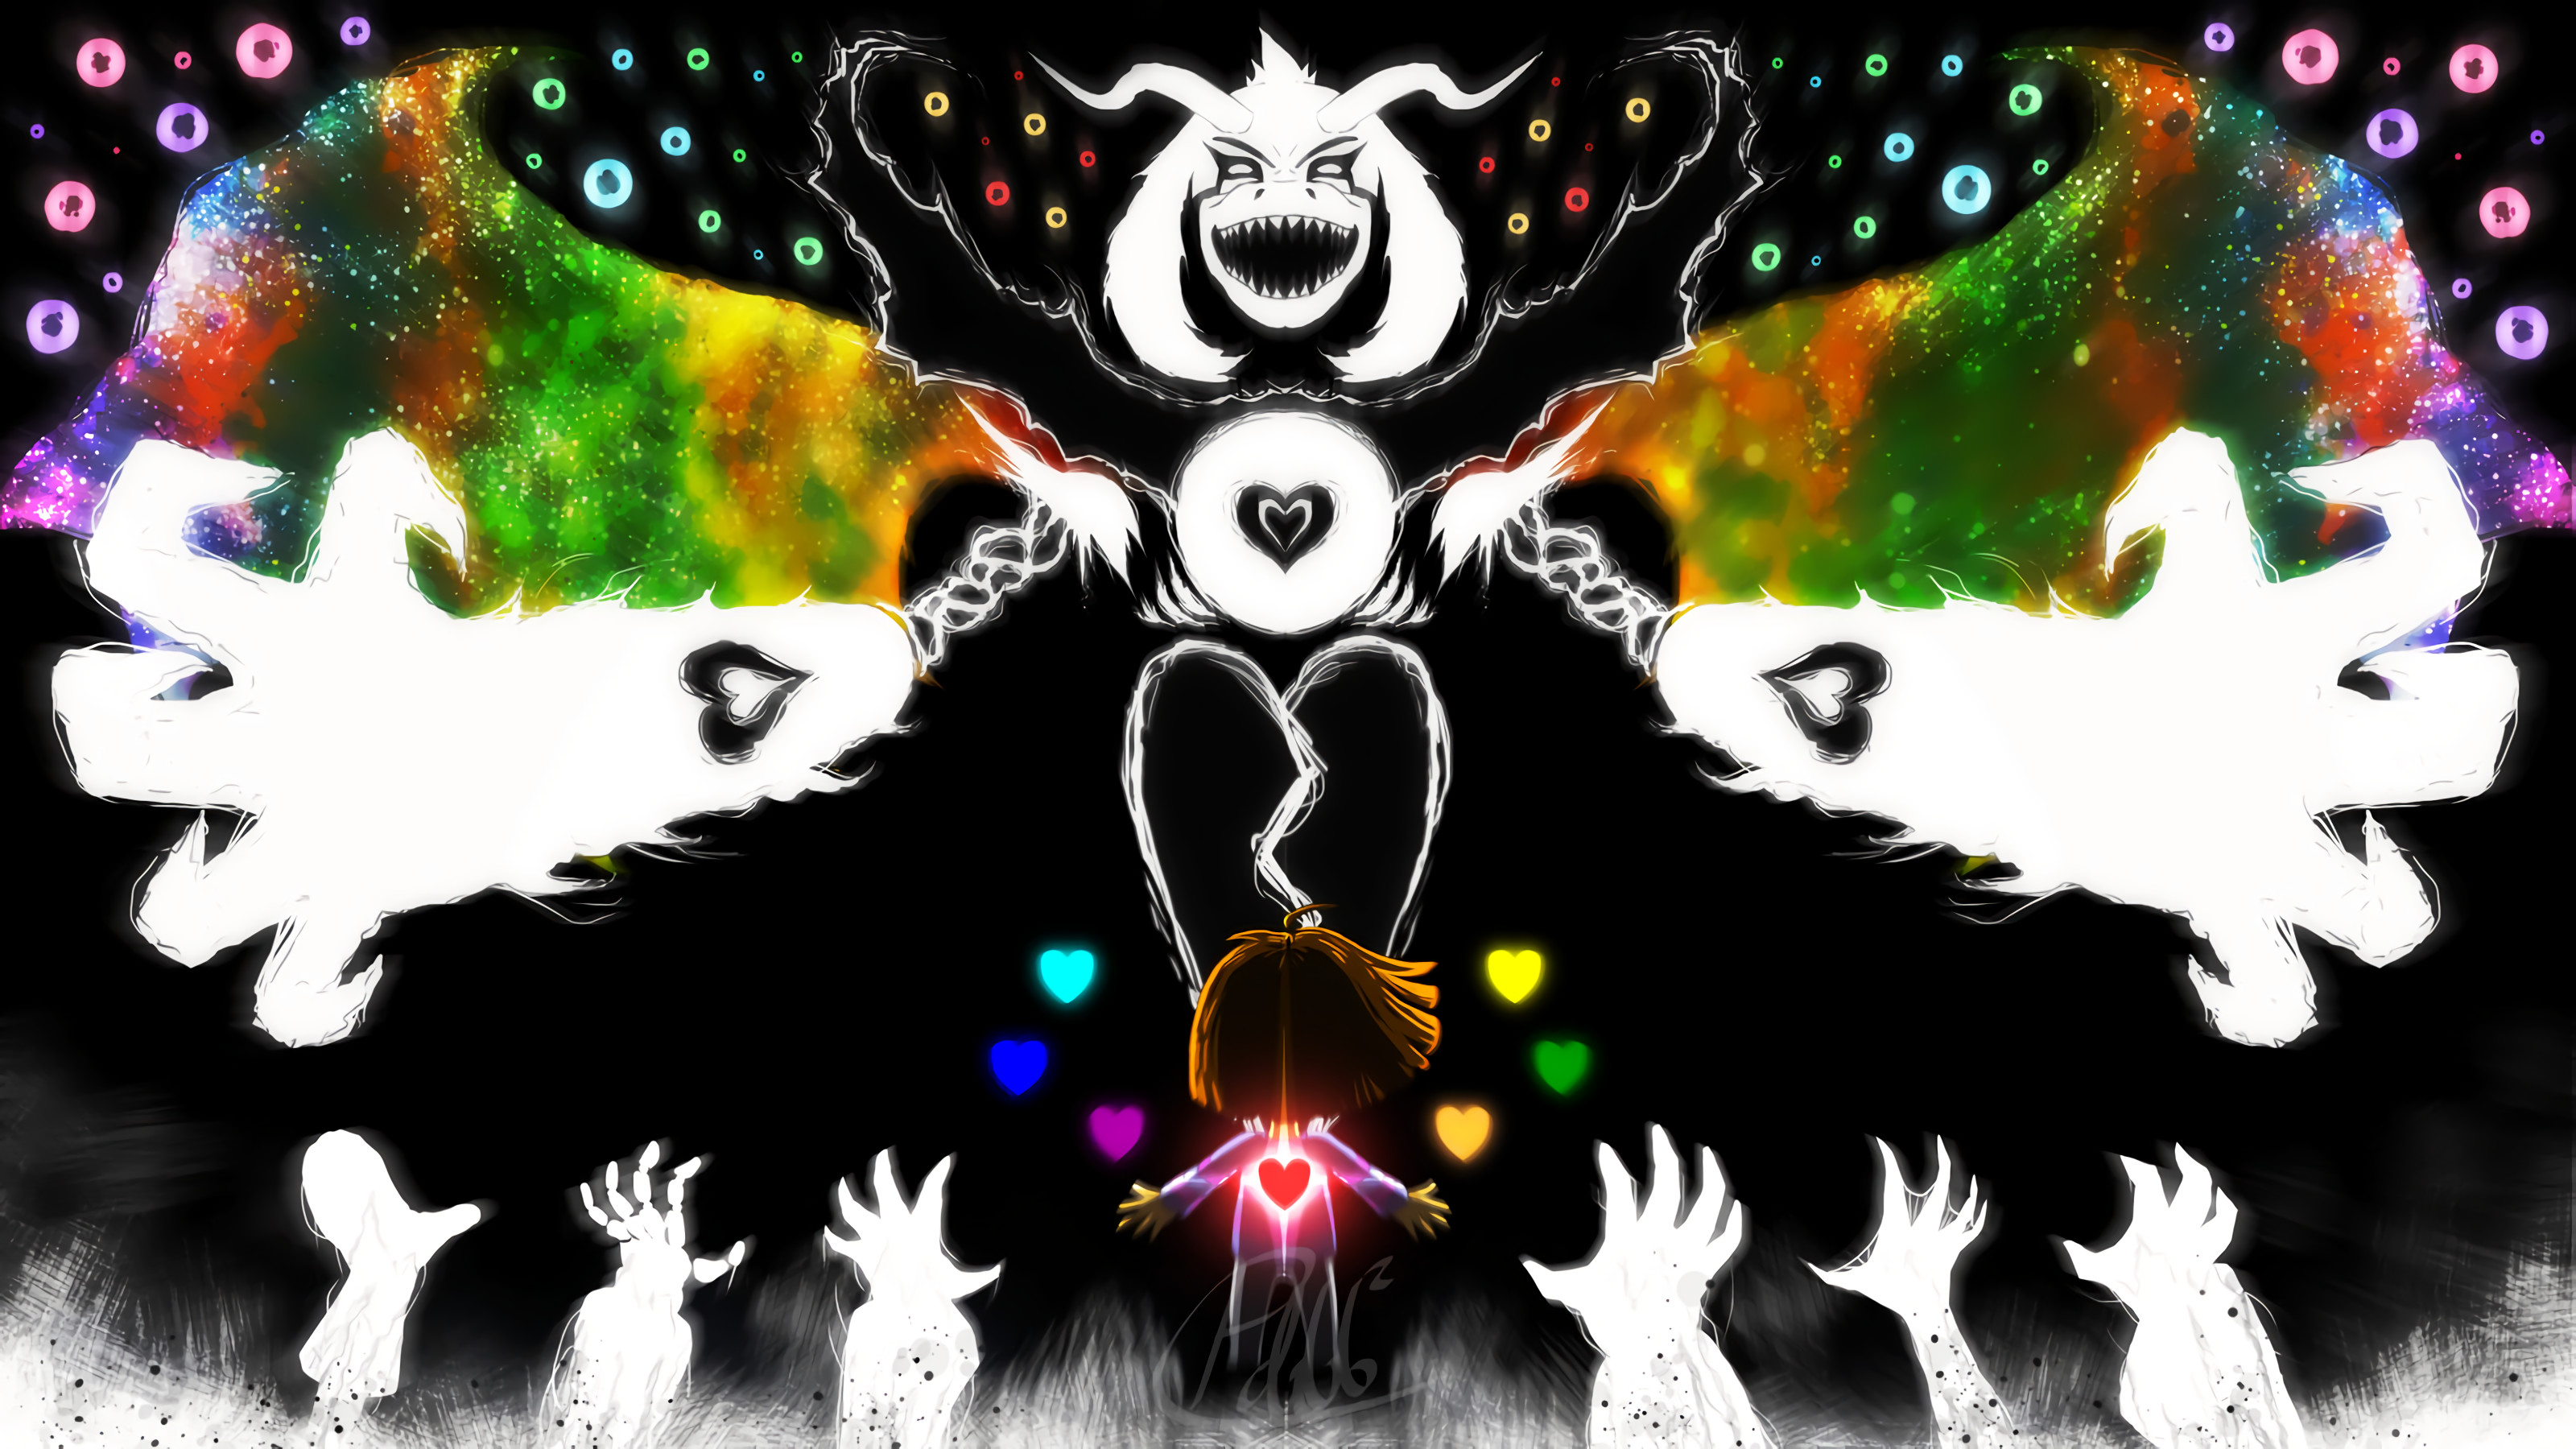 3200x1800 - Undertale Wallpaper 1920x1080 20